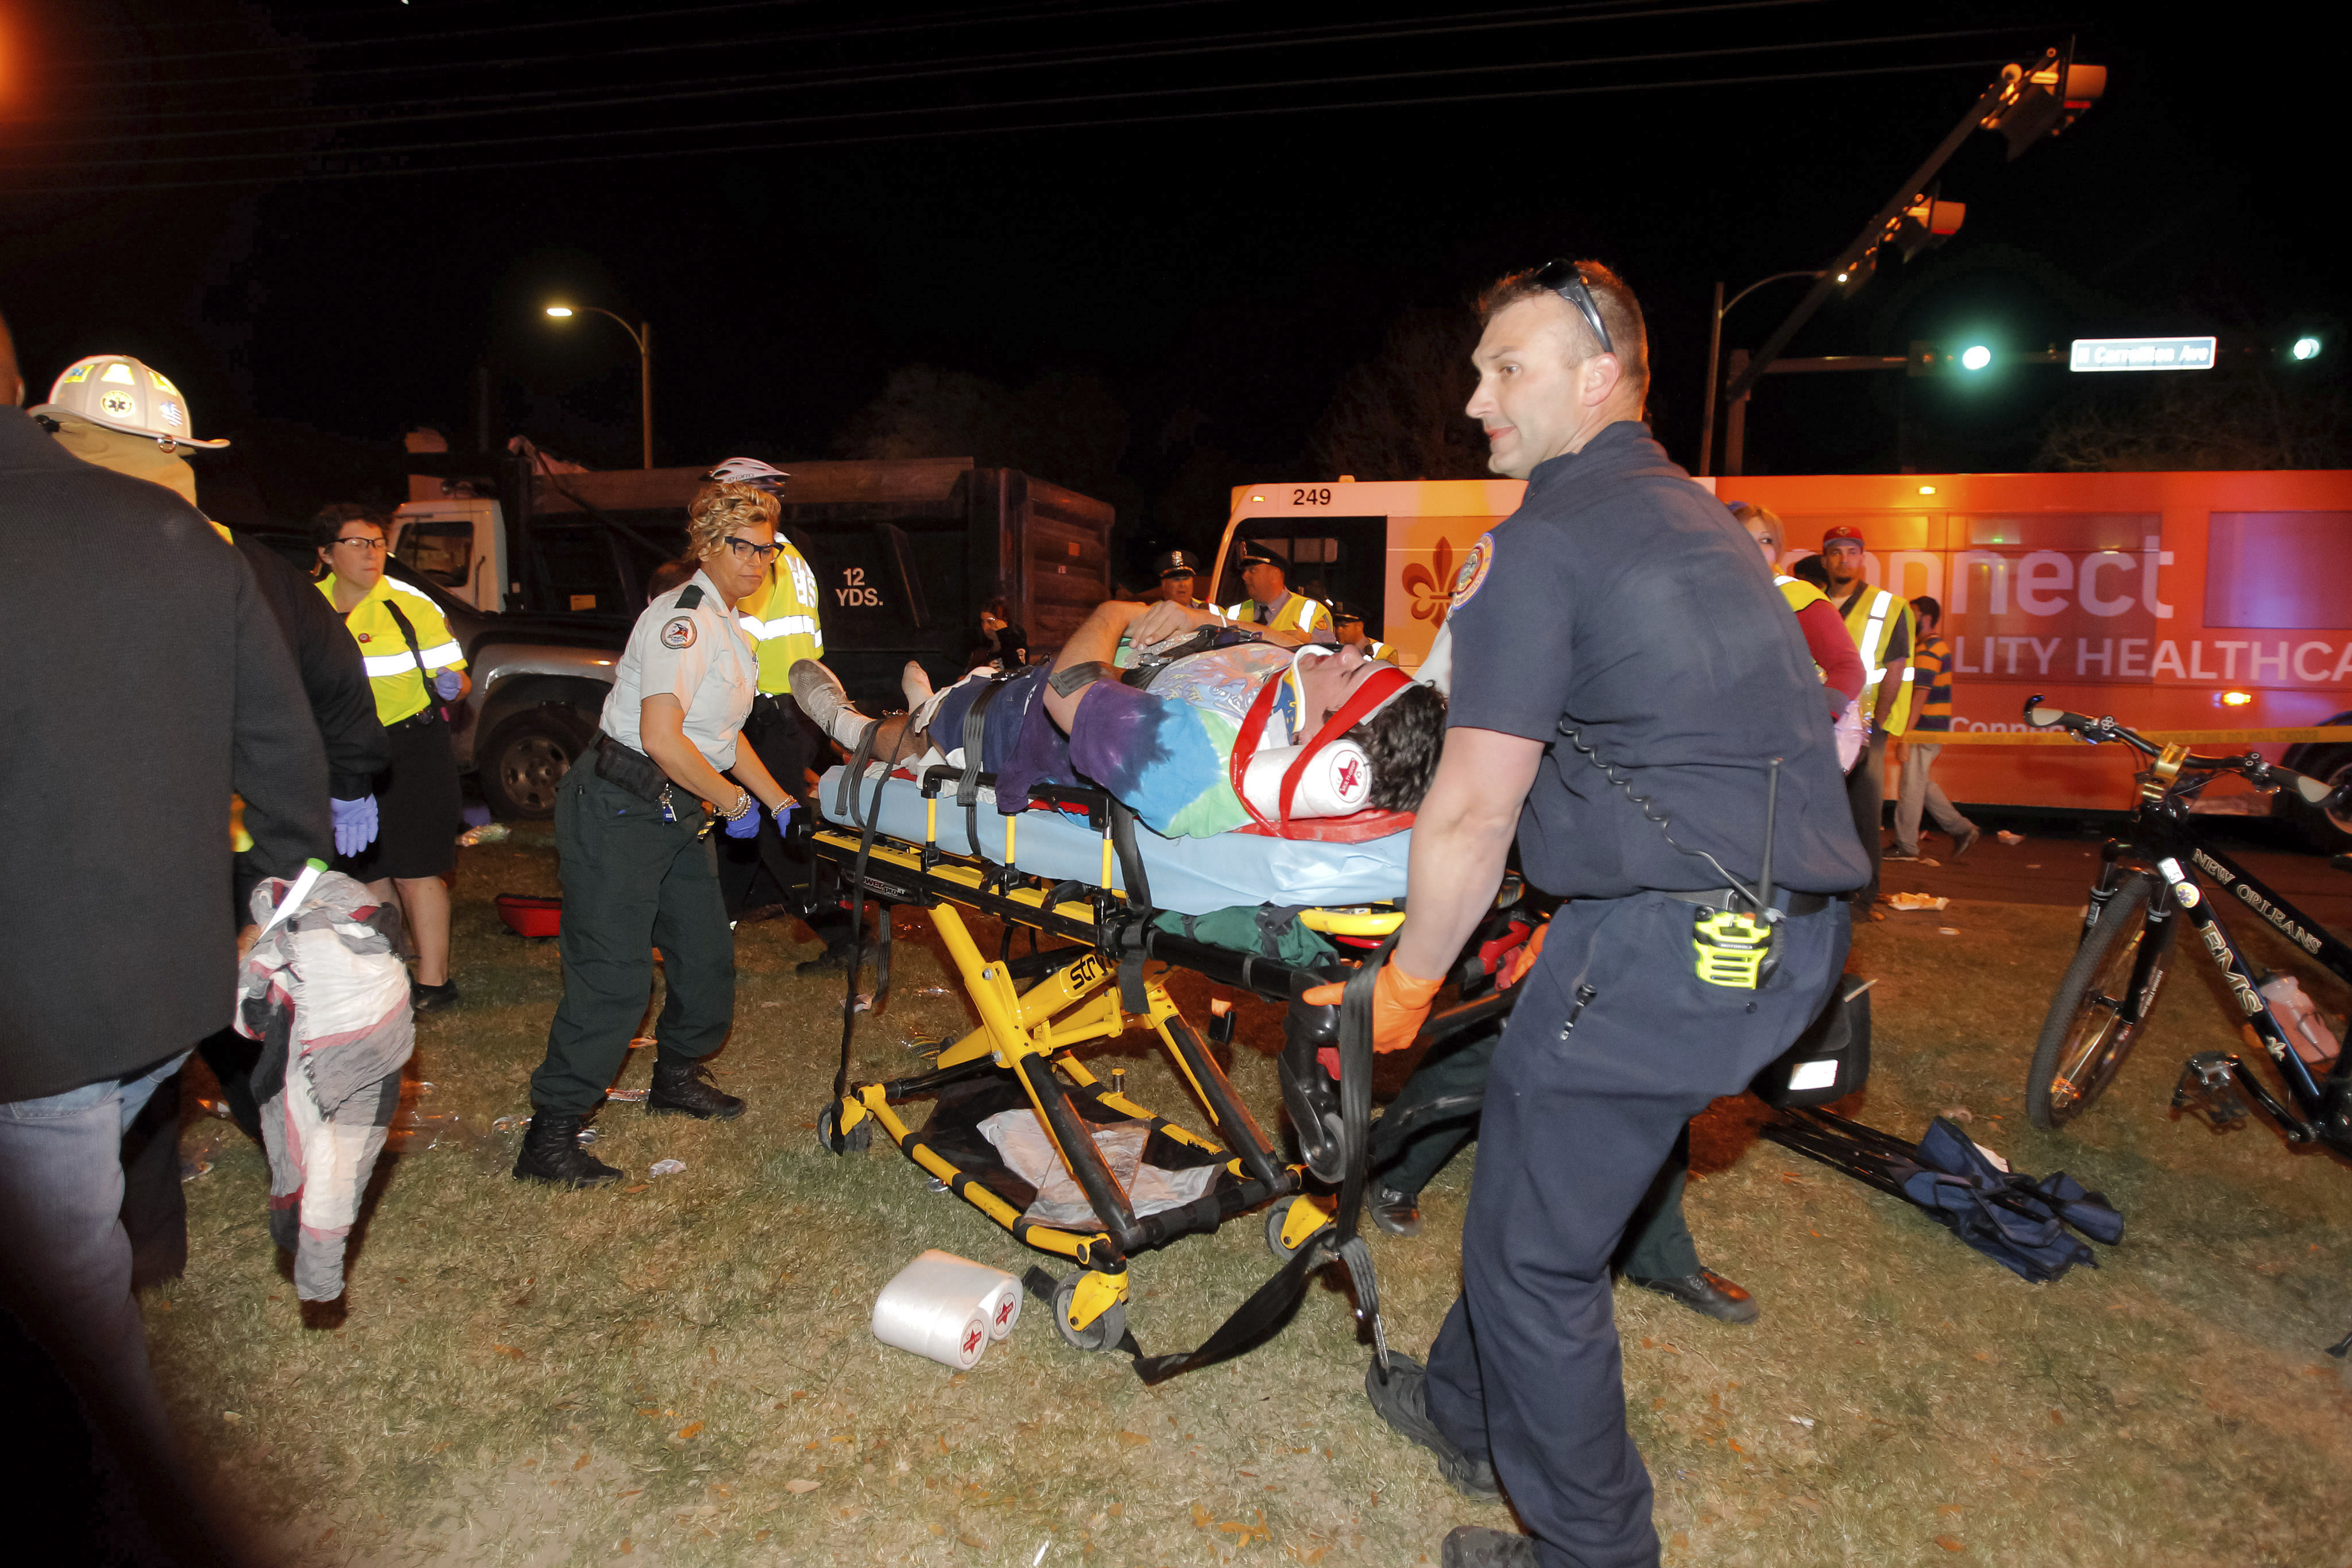 New Orleans emergency personnel attend to an injured parade watcher after a pickup truck plowed into a crowd injuring multiple people watching the Krewe of Endymion parade in the Mid-City section of New Orleans on Feb. 25, 2017. (Scott Threlkeld/The Advocate via AP)